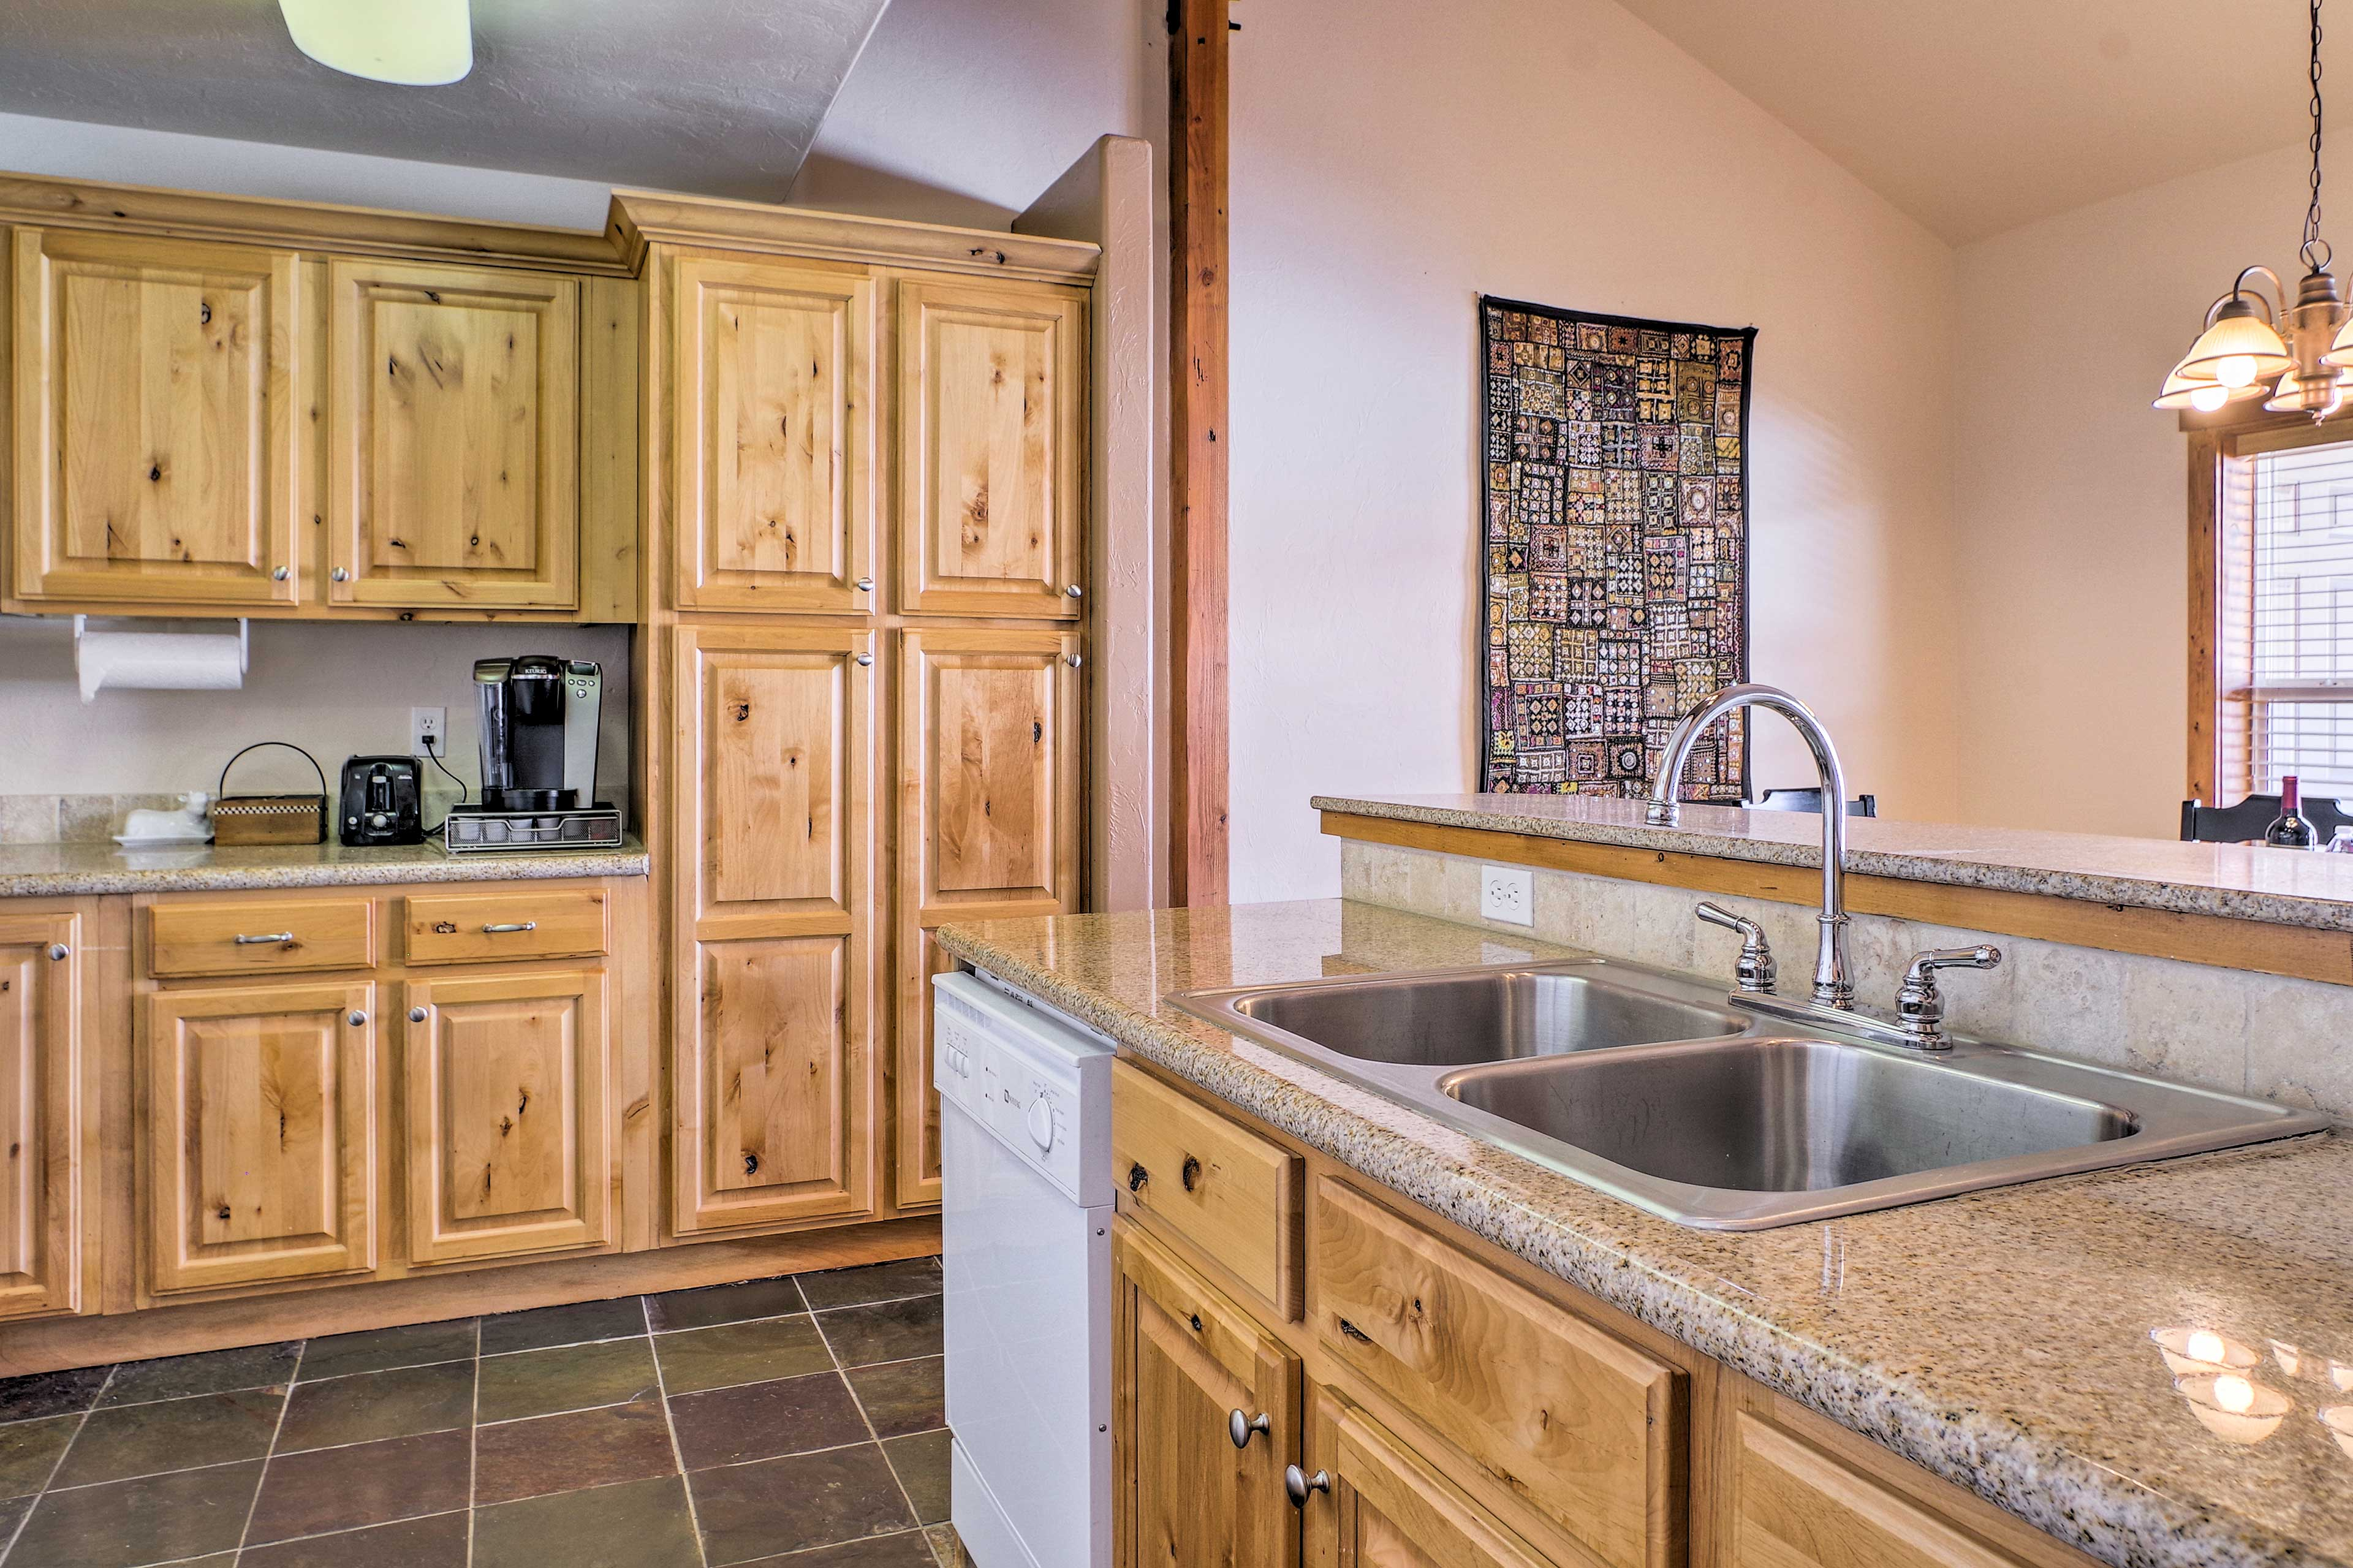 Making meals will be a breeze in this fully equipped kitchen!